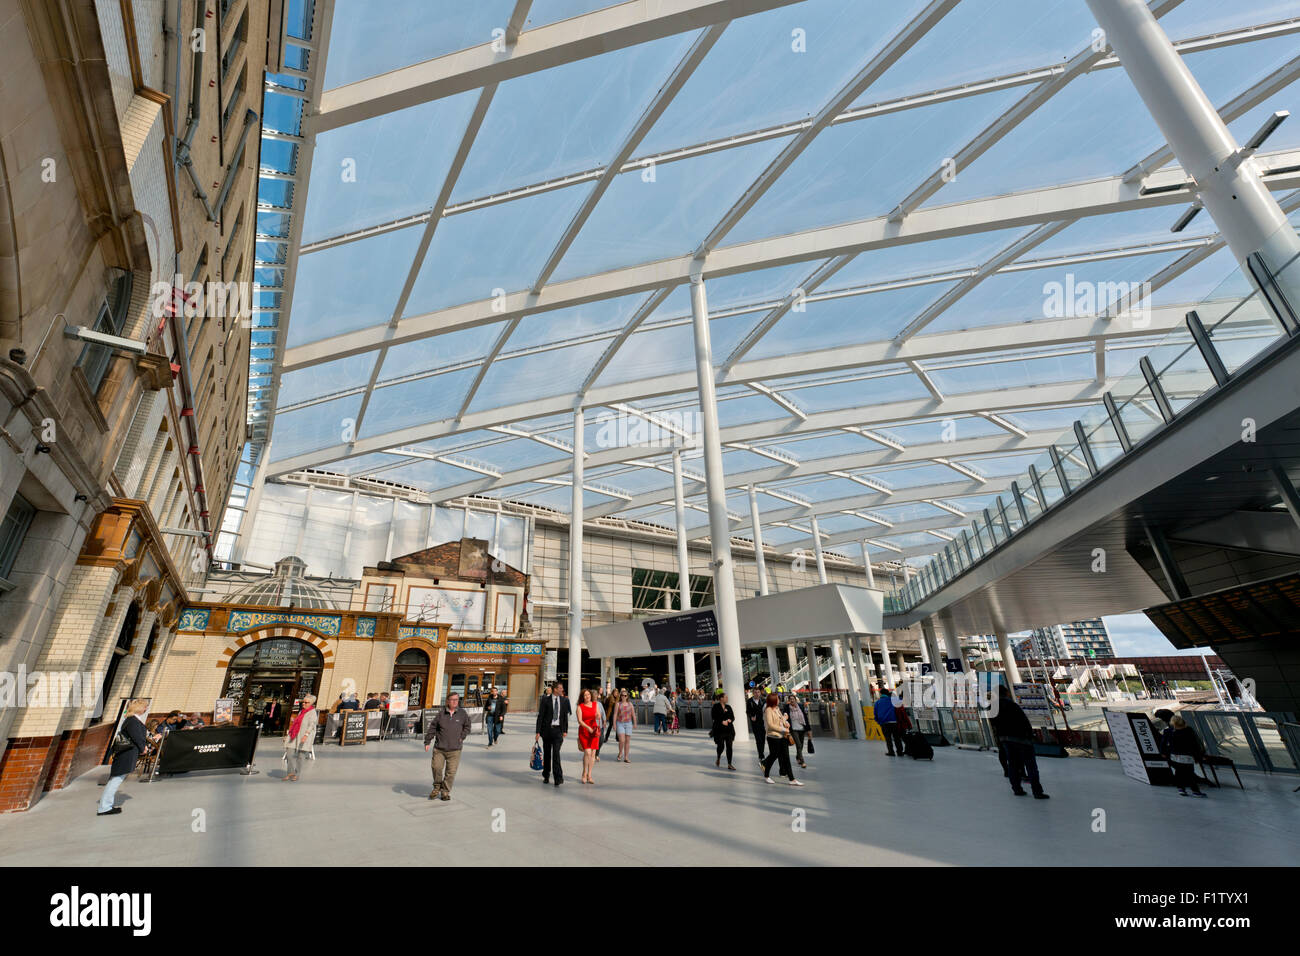 The main foyer hall of the refurbished Victoria Station in Manchester - Stock Image